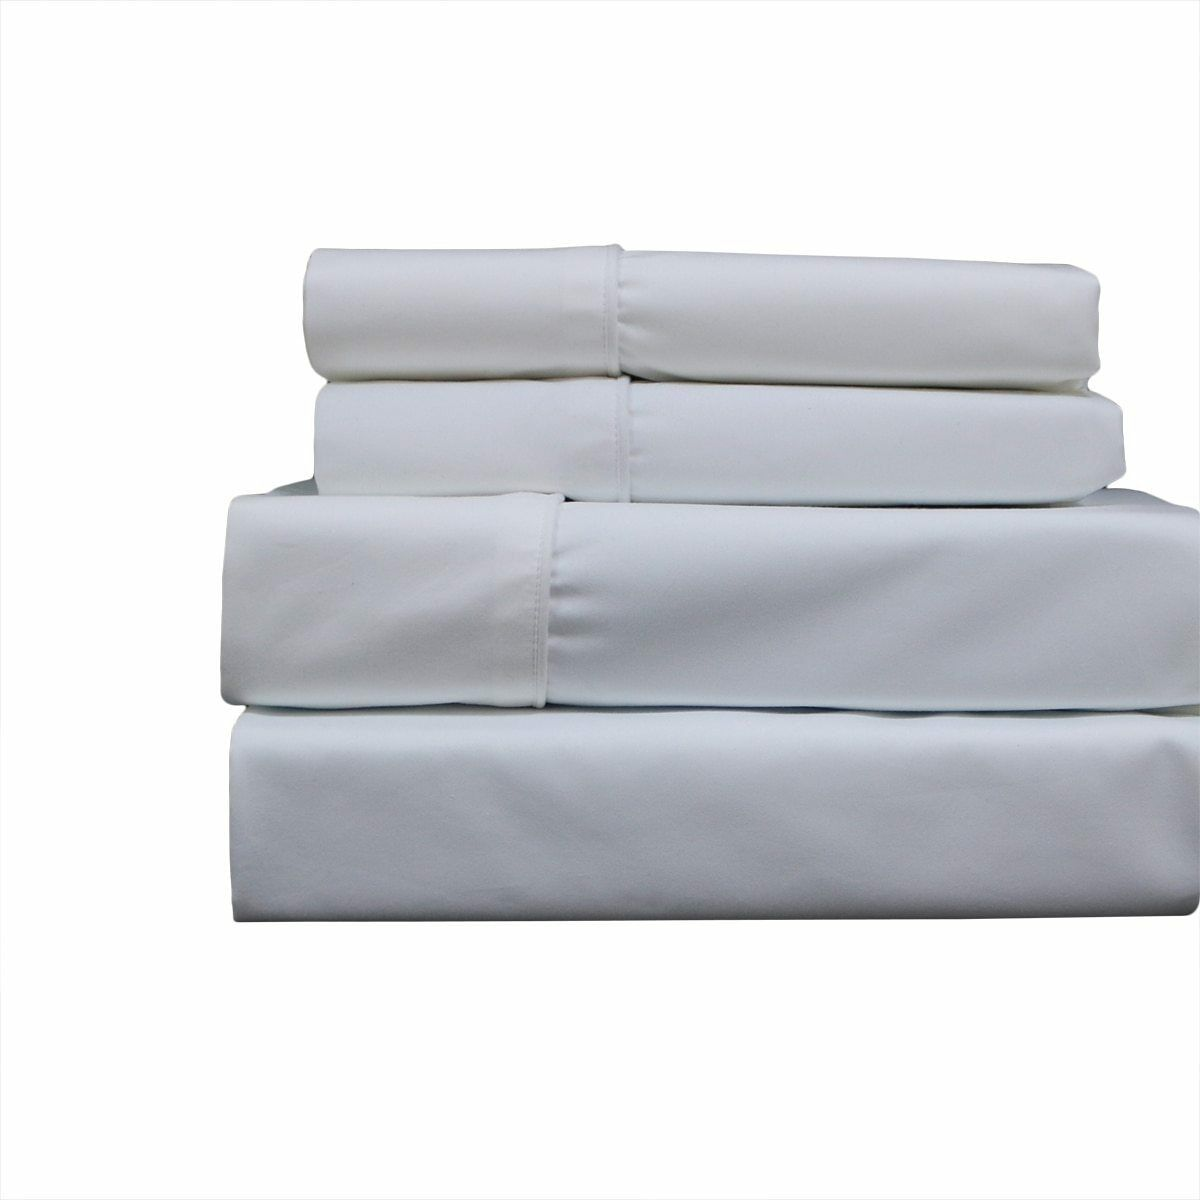 Wrinkle-Free 650Tc Cotton Blend Waterbed Sheets Un-attached